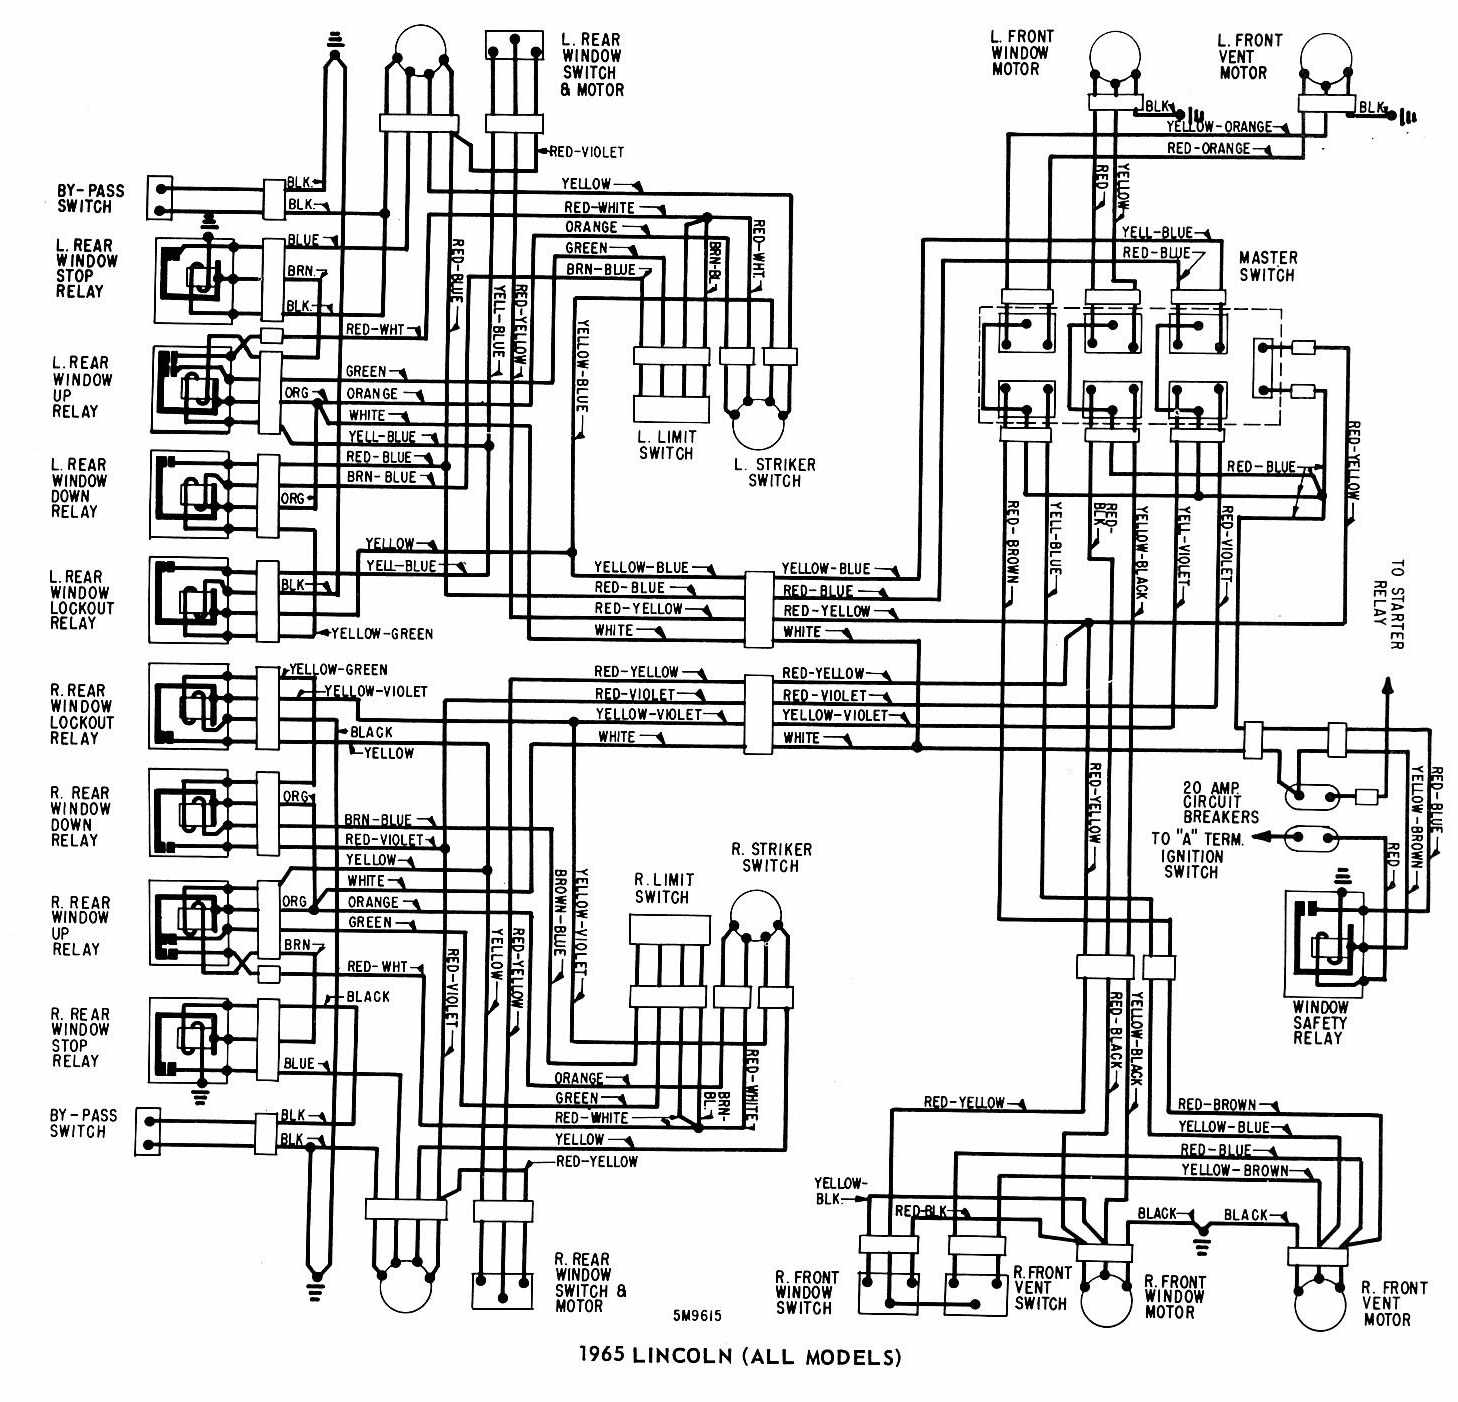 Ge Refrigerator Wiring Diagram 1965 Library Power Lifier Circuit On Philips Lincoln All Models Windows